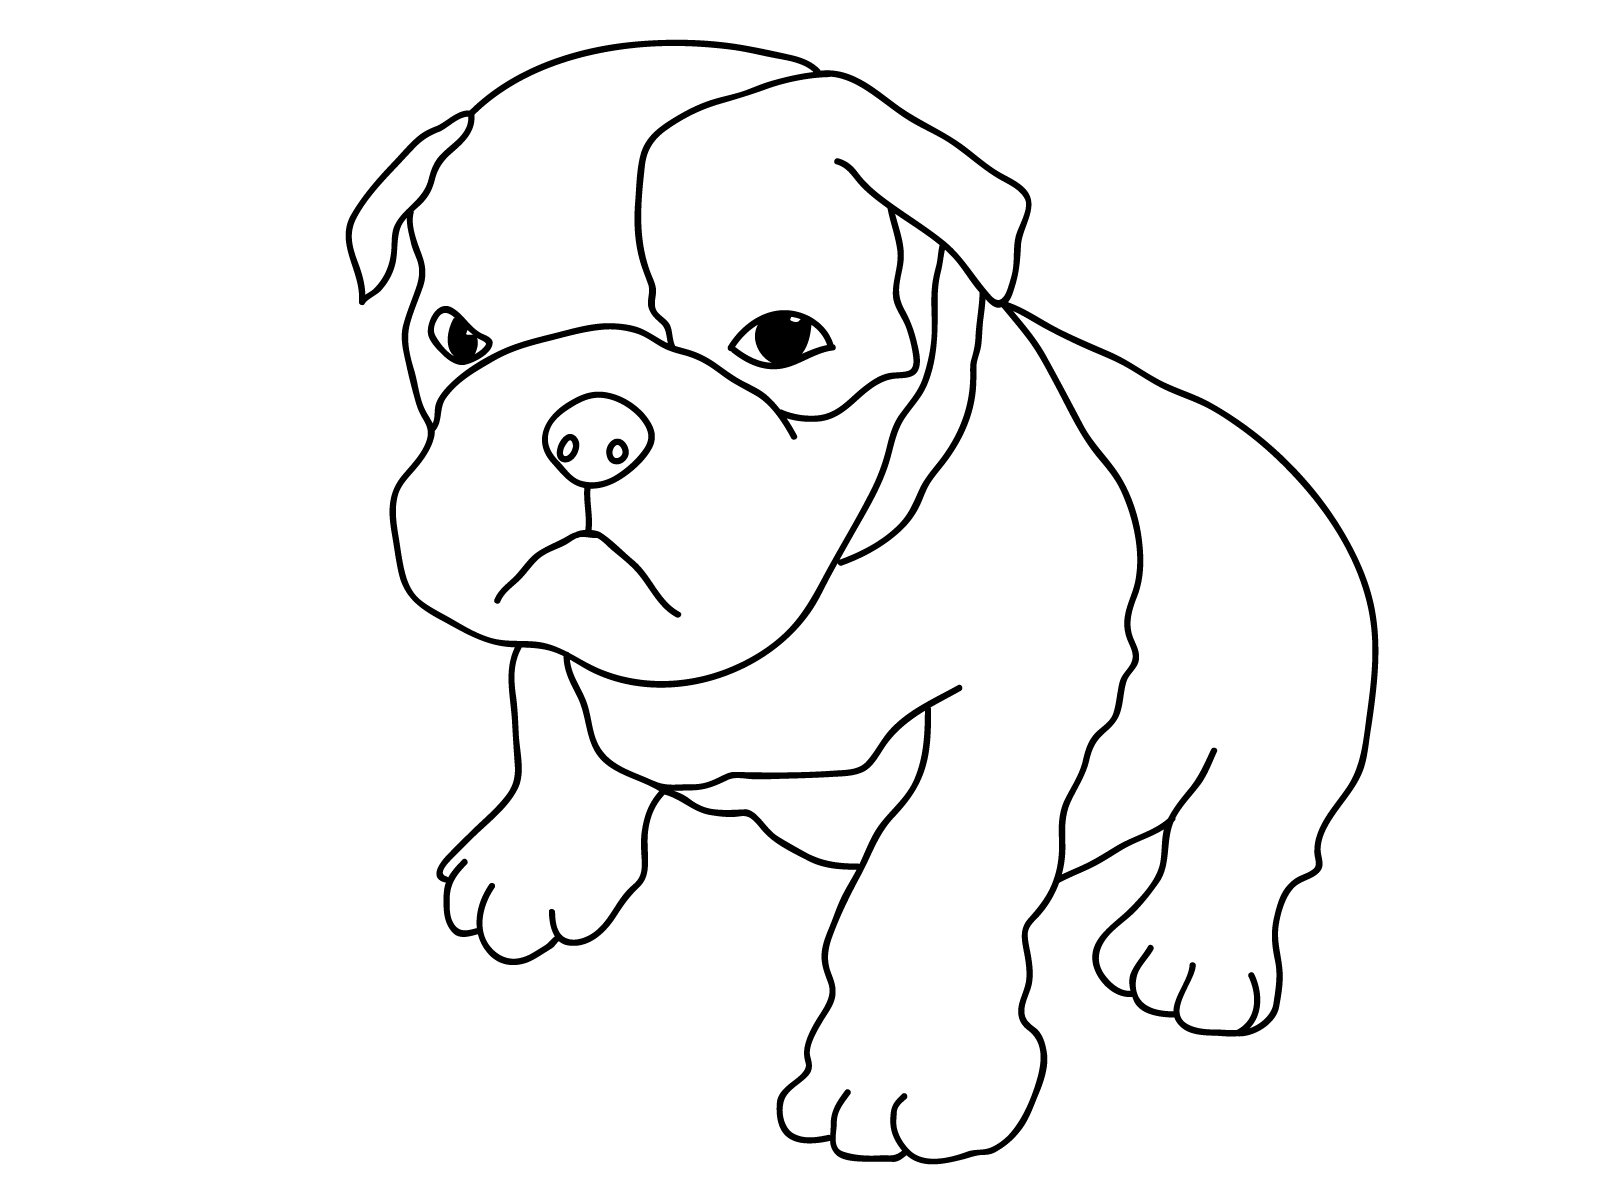 coloring pages of puppies free printable dog coloring pages for kids pages of puppies coloring